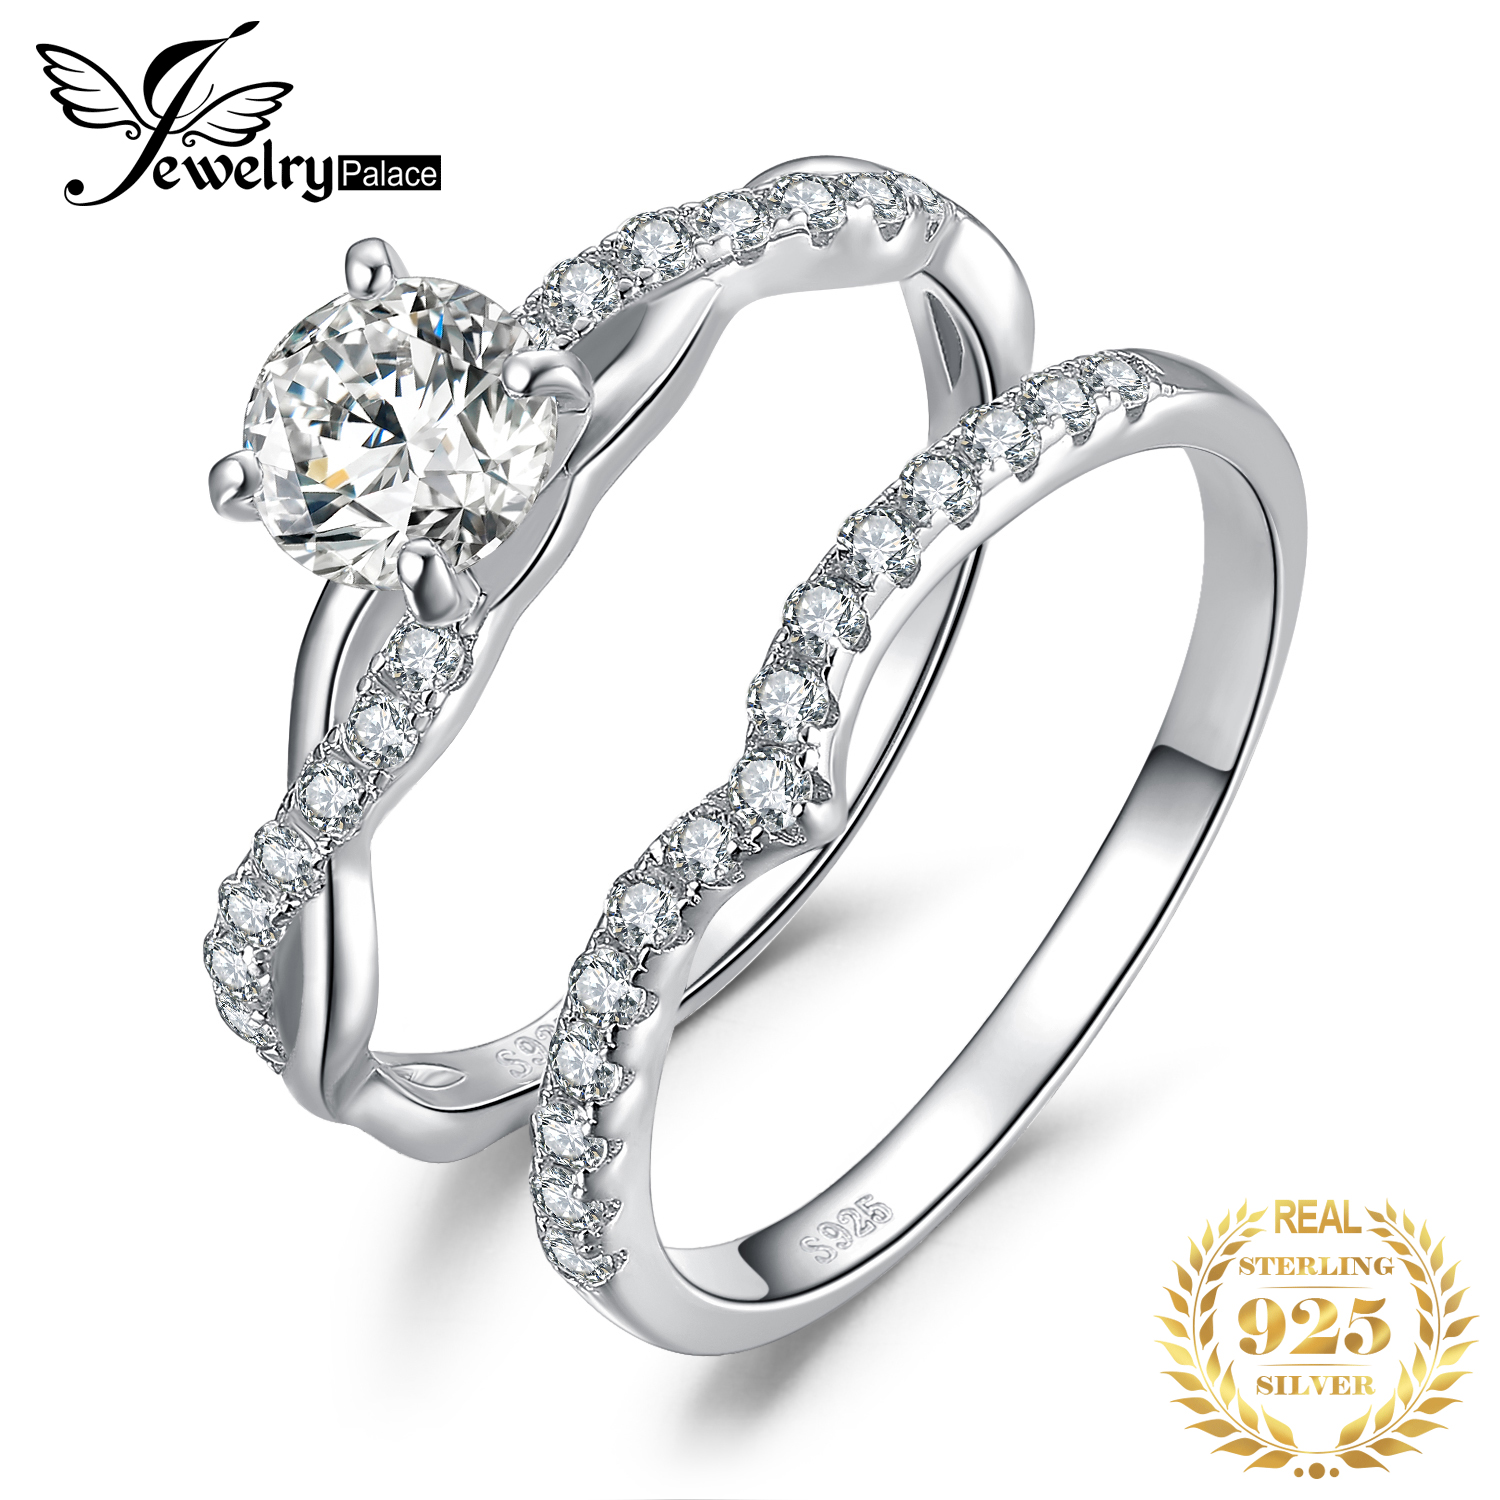 Jewelrypalace Infinity Engagement Ring Set 925 Sterling Silver Rings For Women Wedding Rings Band Bridal Sets Silver 925 Jewelry Rings Aliexpress